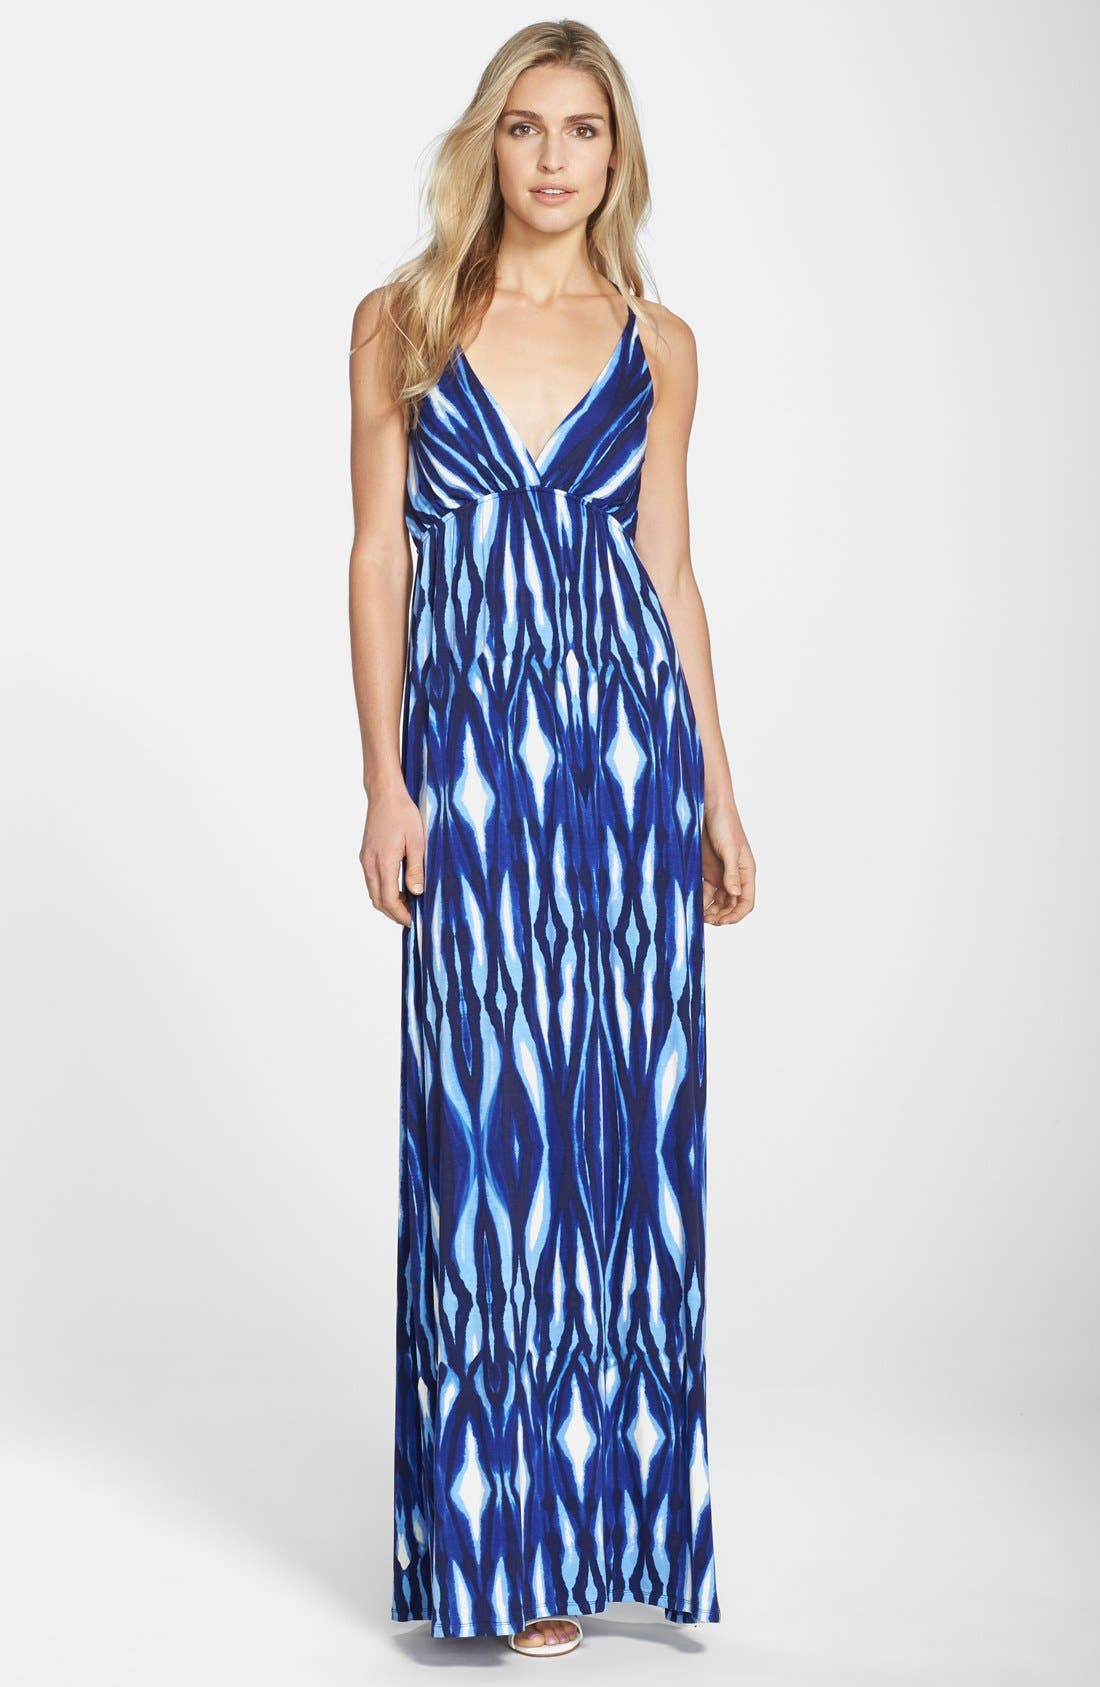 Alternate Image 1 Selected - Felicity & Coco Print Maxi Dress (Regular & Petite) (Nordstrom Exclusive)